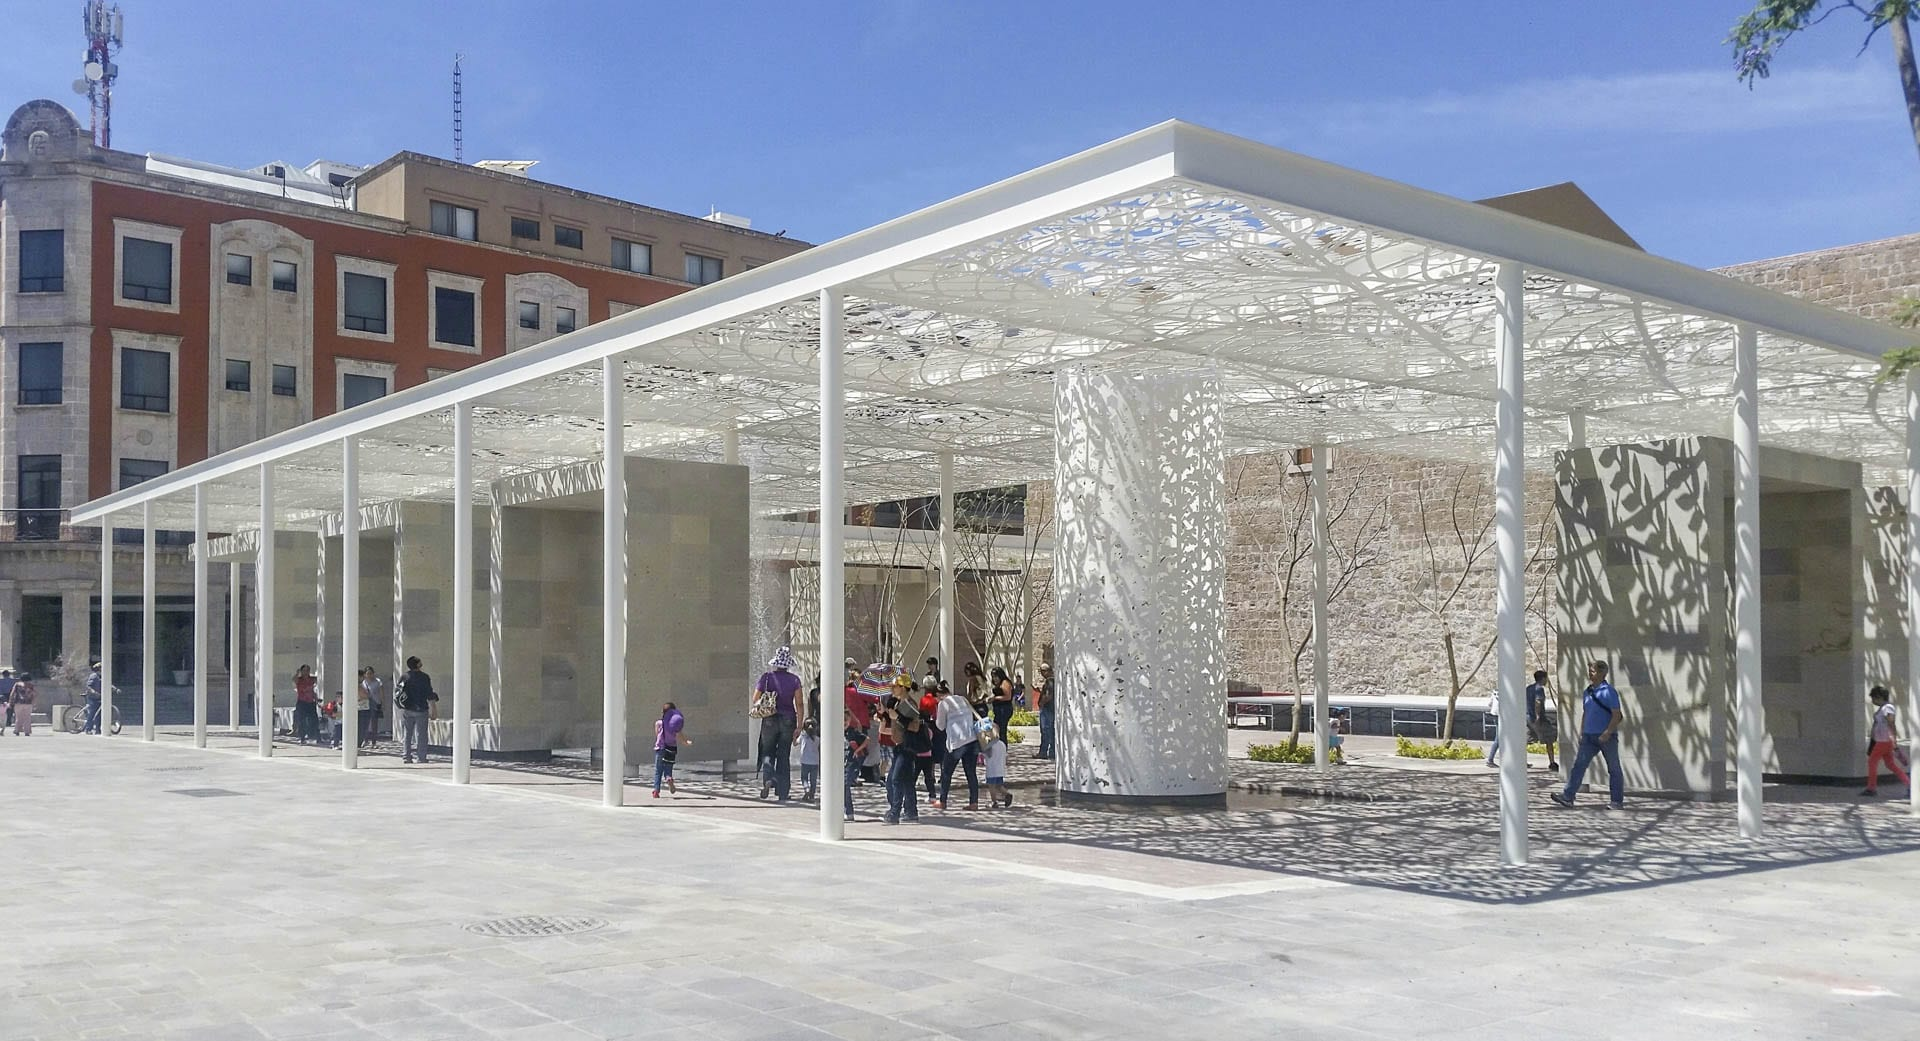 Sunlight filters through the Jan Hendrix-designed canopy at Aguascalientes.